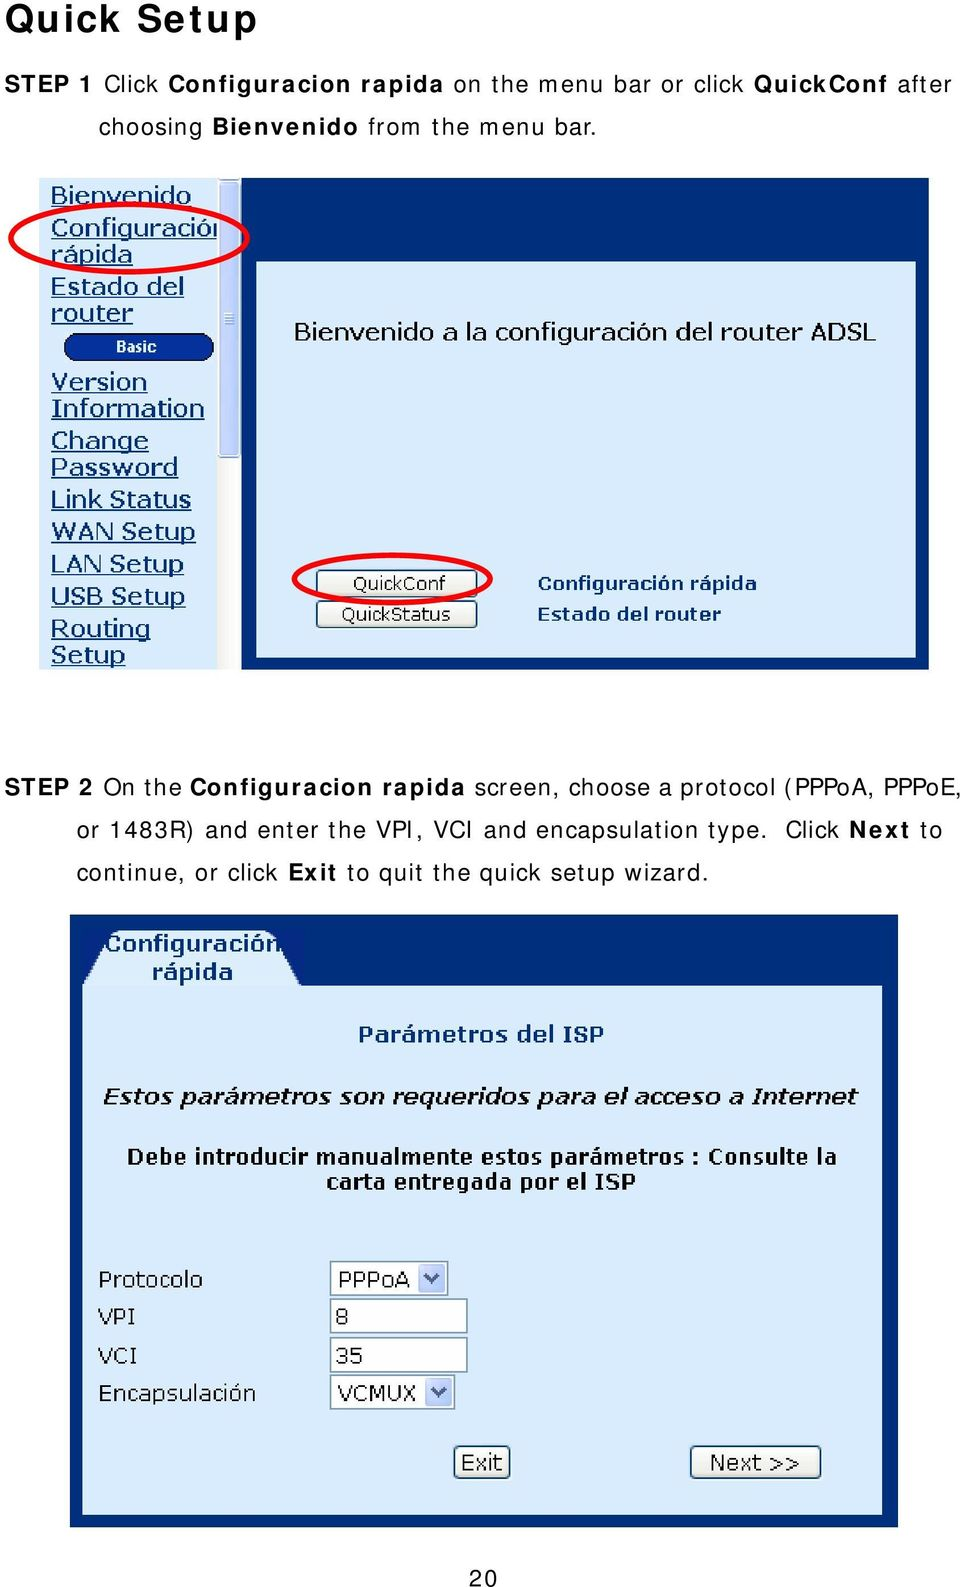 STEP 2 On the Configuracion rapida screen, choose a protocol (PPPoA, PPPoE, or